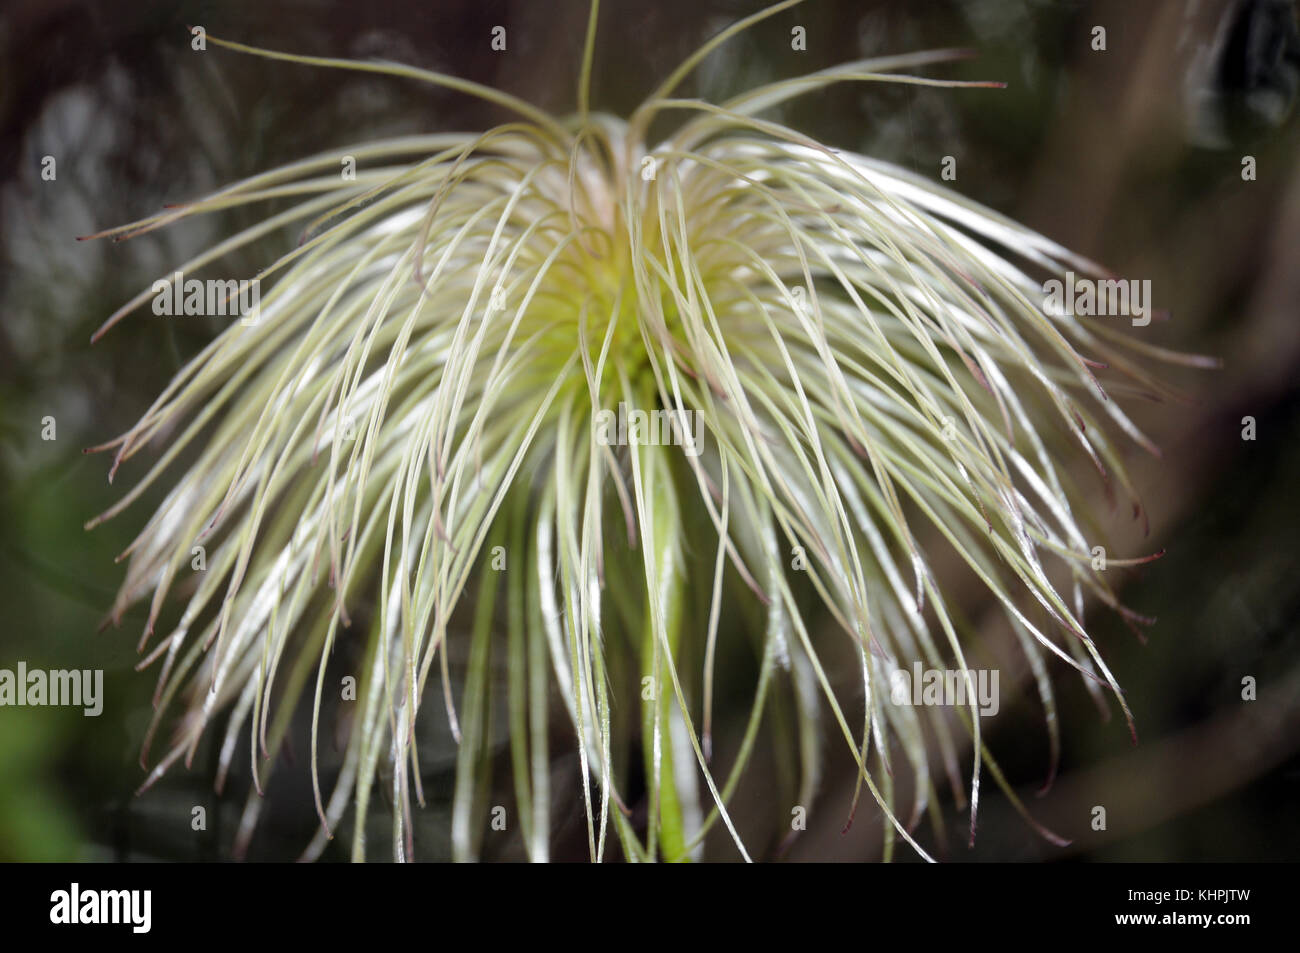 gleaming fruits of a clematis - Stock Image